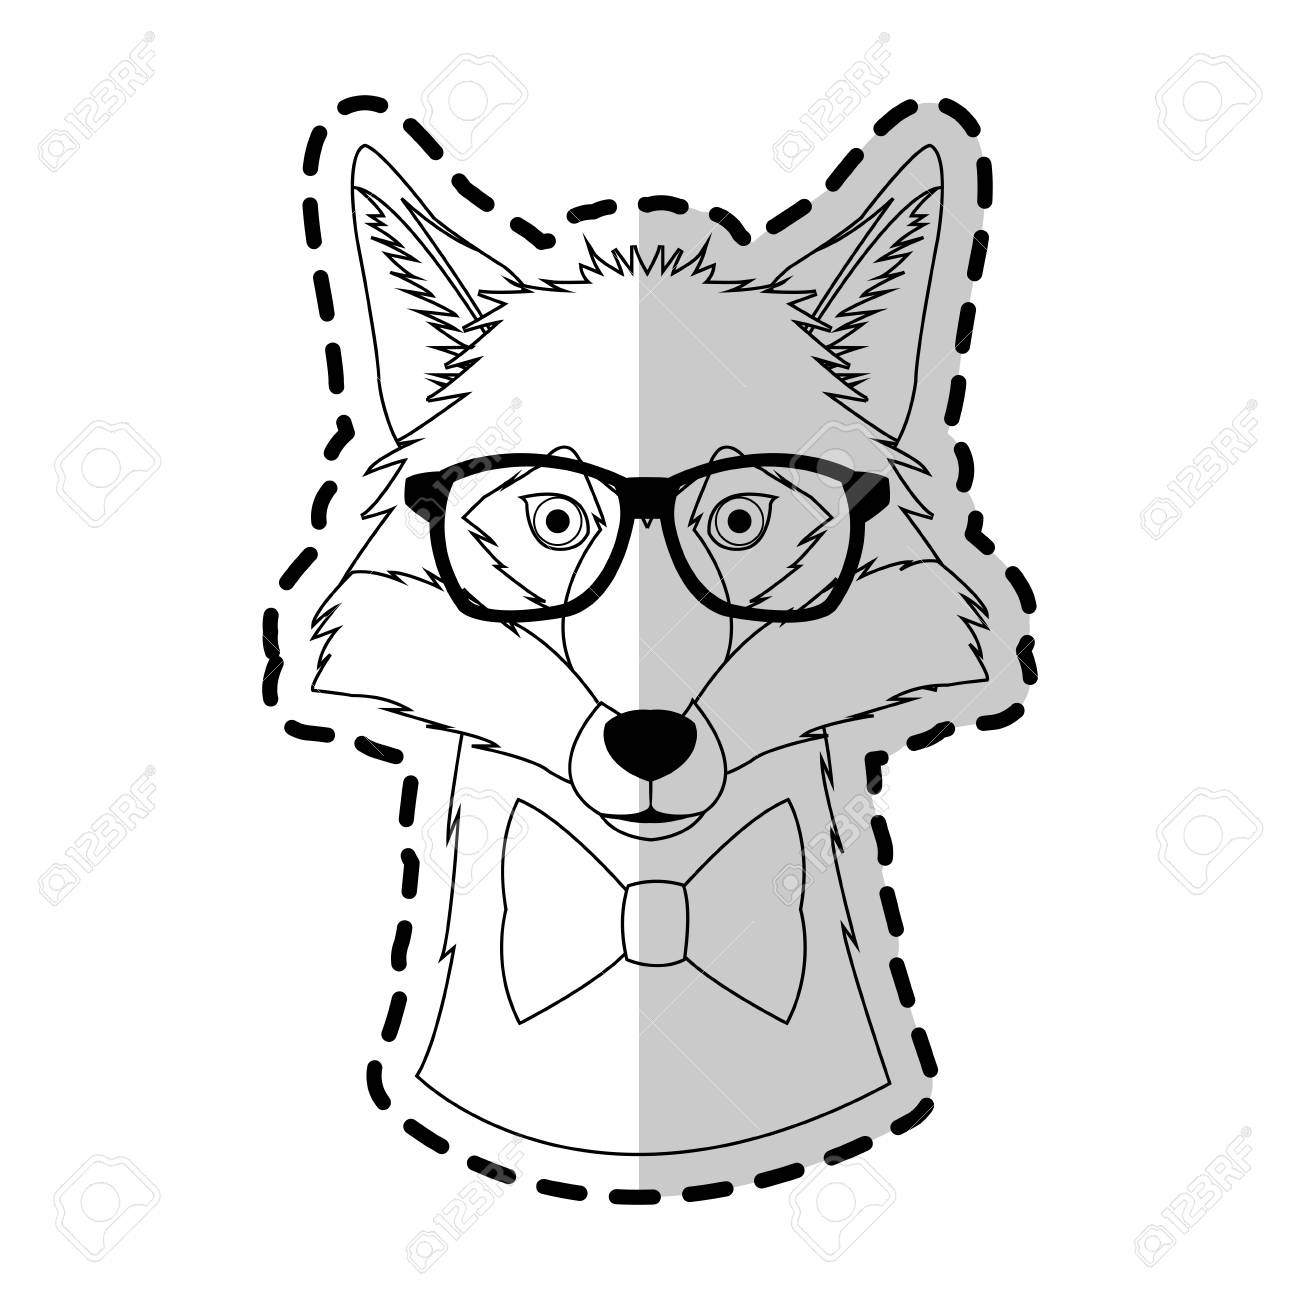 Fox Hipster Animal Icon Image Vector Illustration Design Royalty Free Cliparts Vectors And Stock Illustration Image 74946711